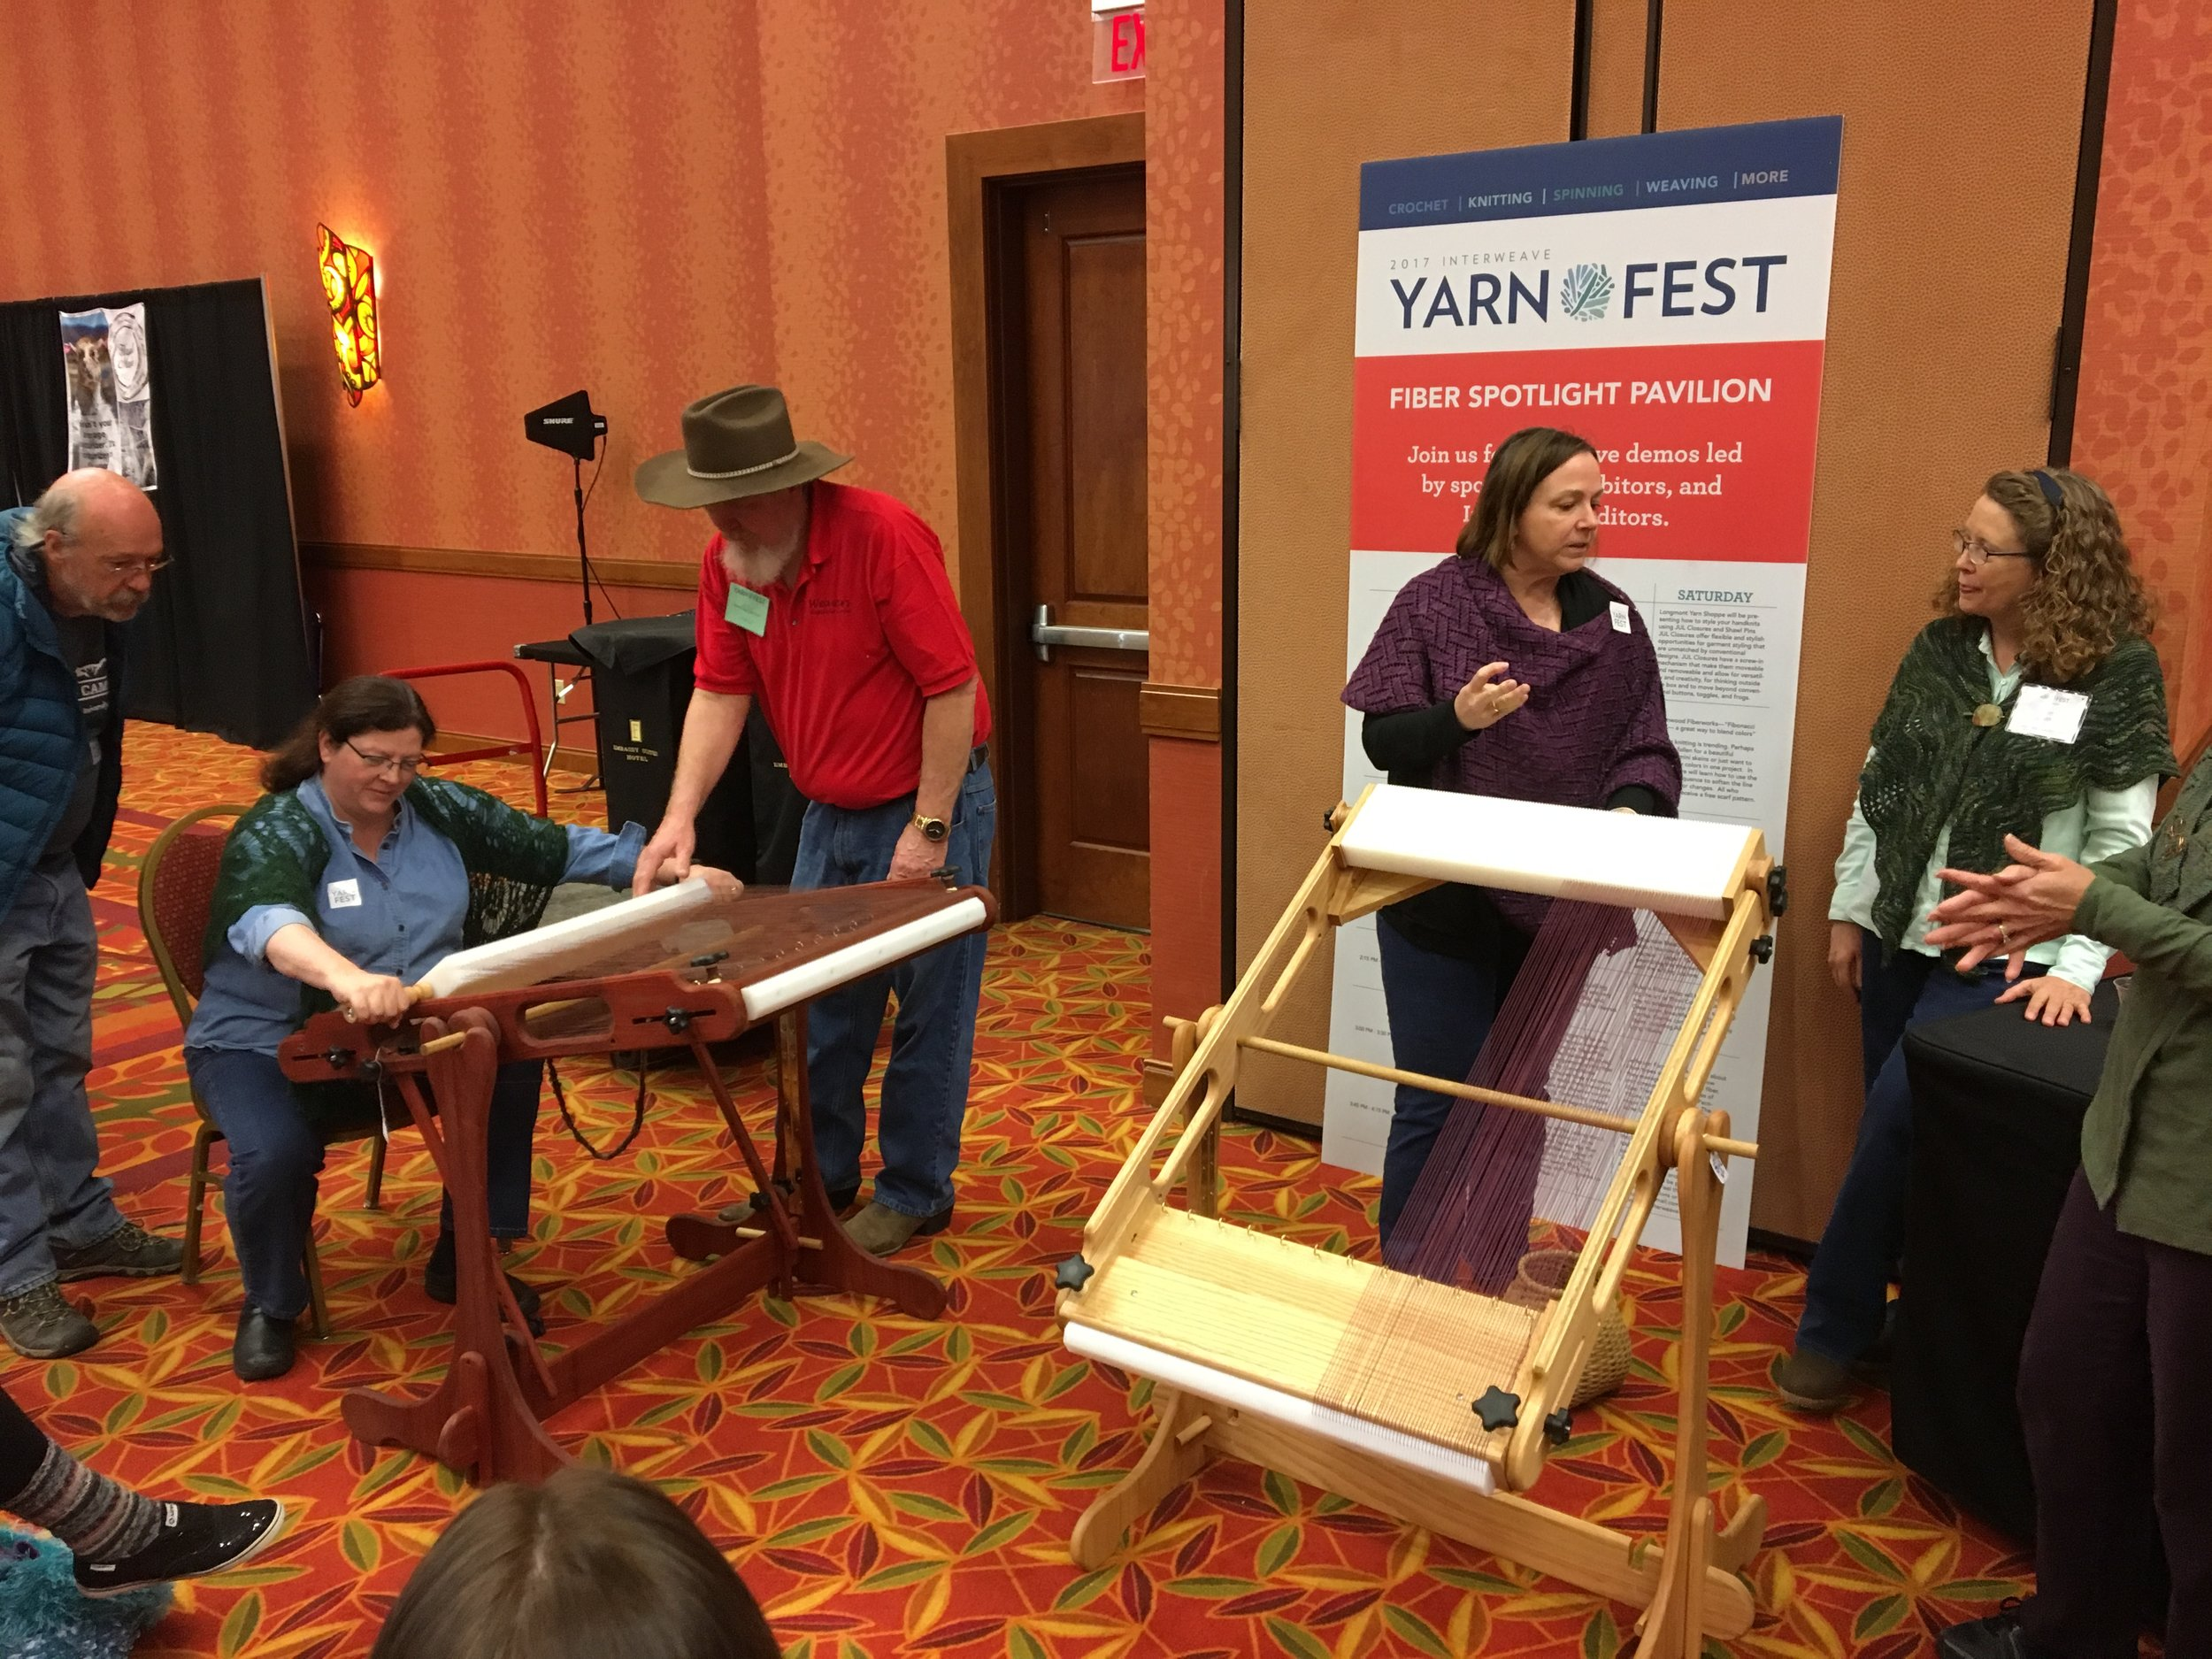 A weaving demonstration on the marketplace floor gave some a chance to try a new craft.